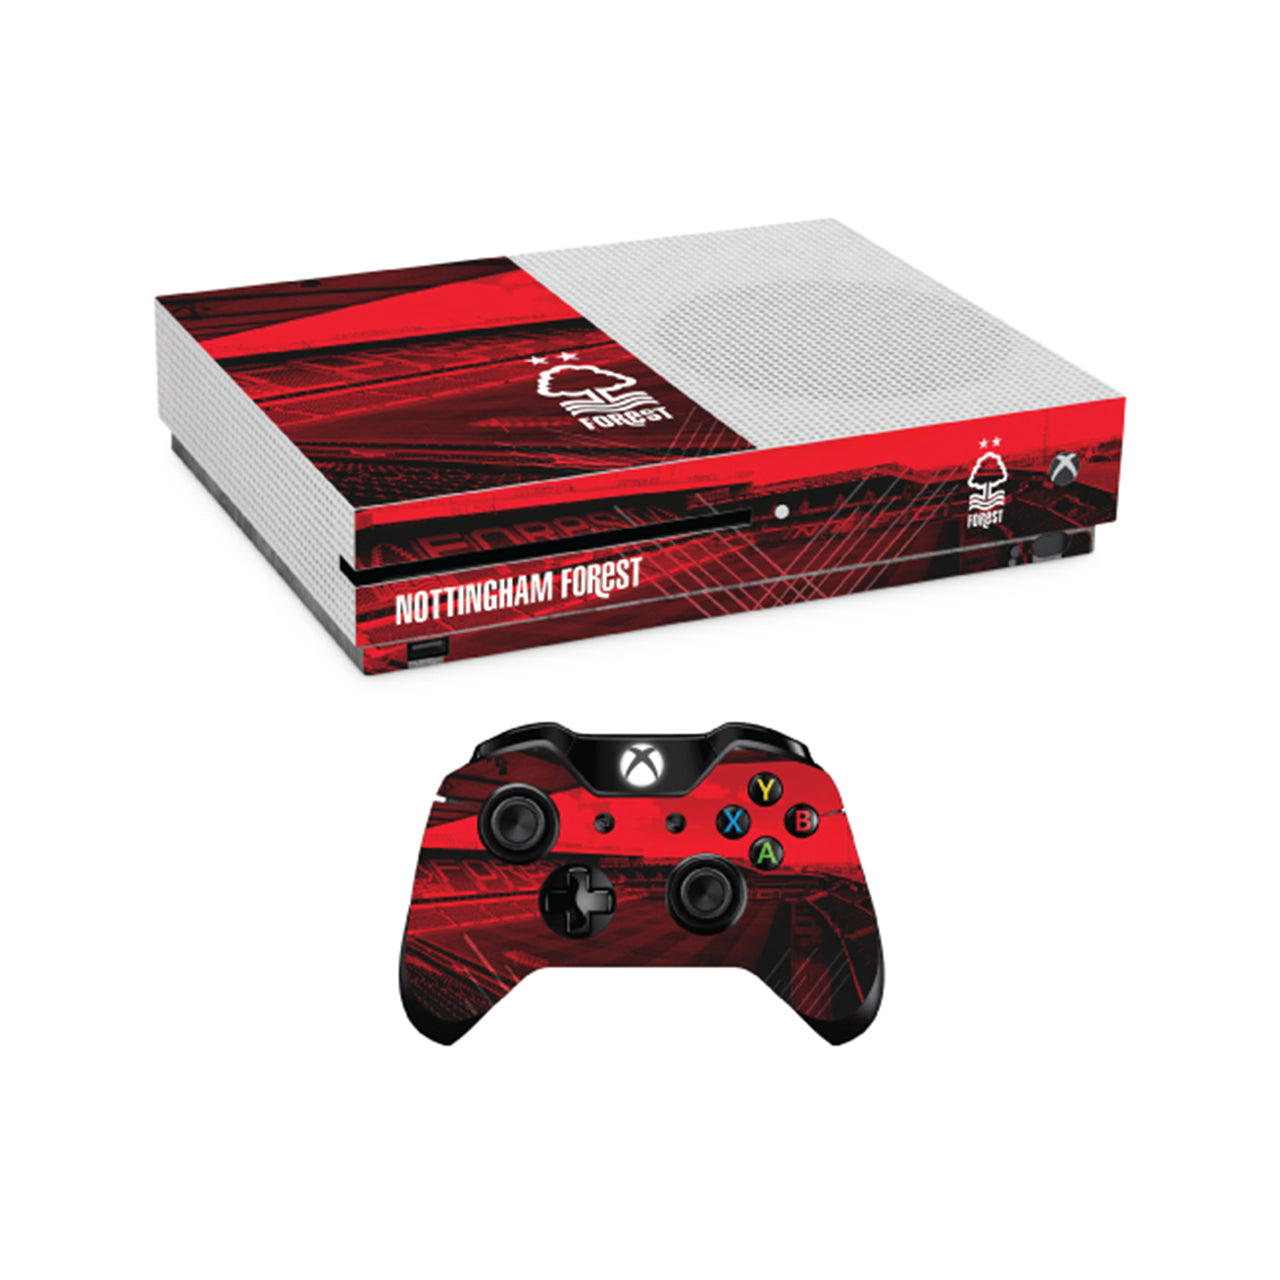 NFFC Xbox One Slim Console and Controller Skin Bundle